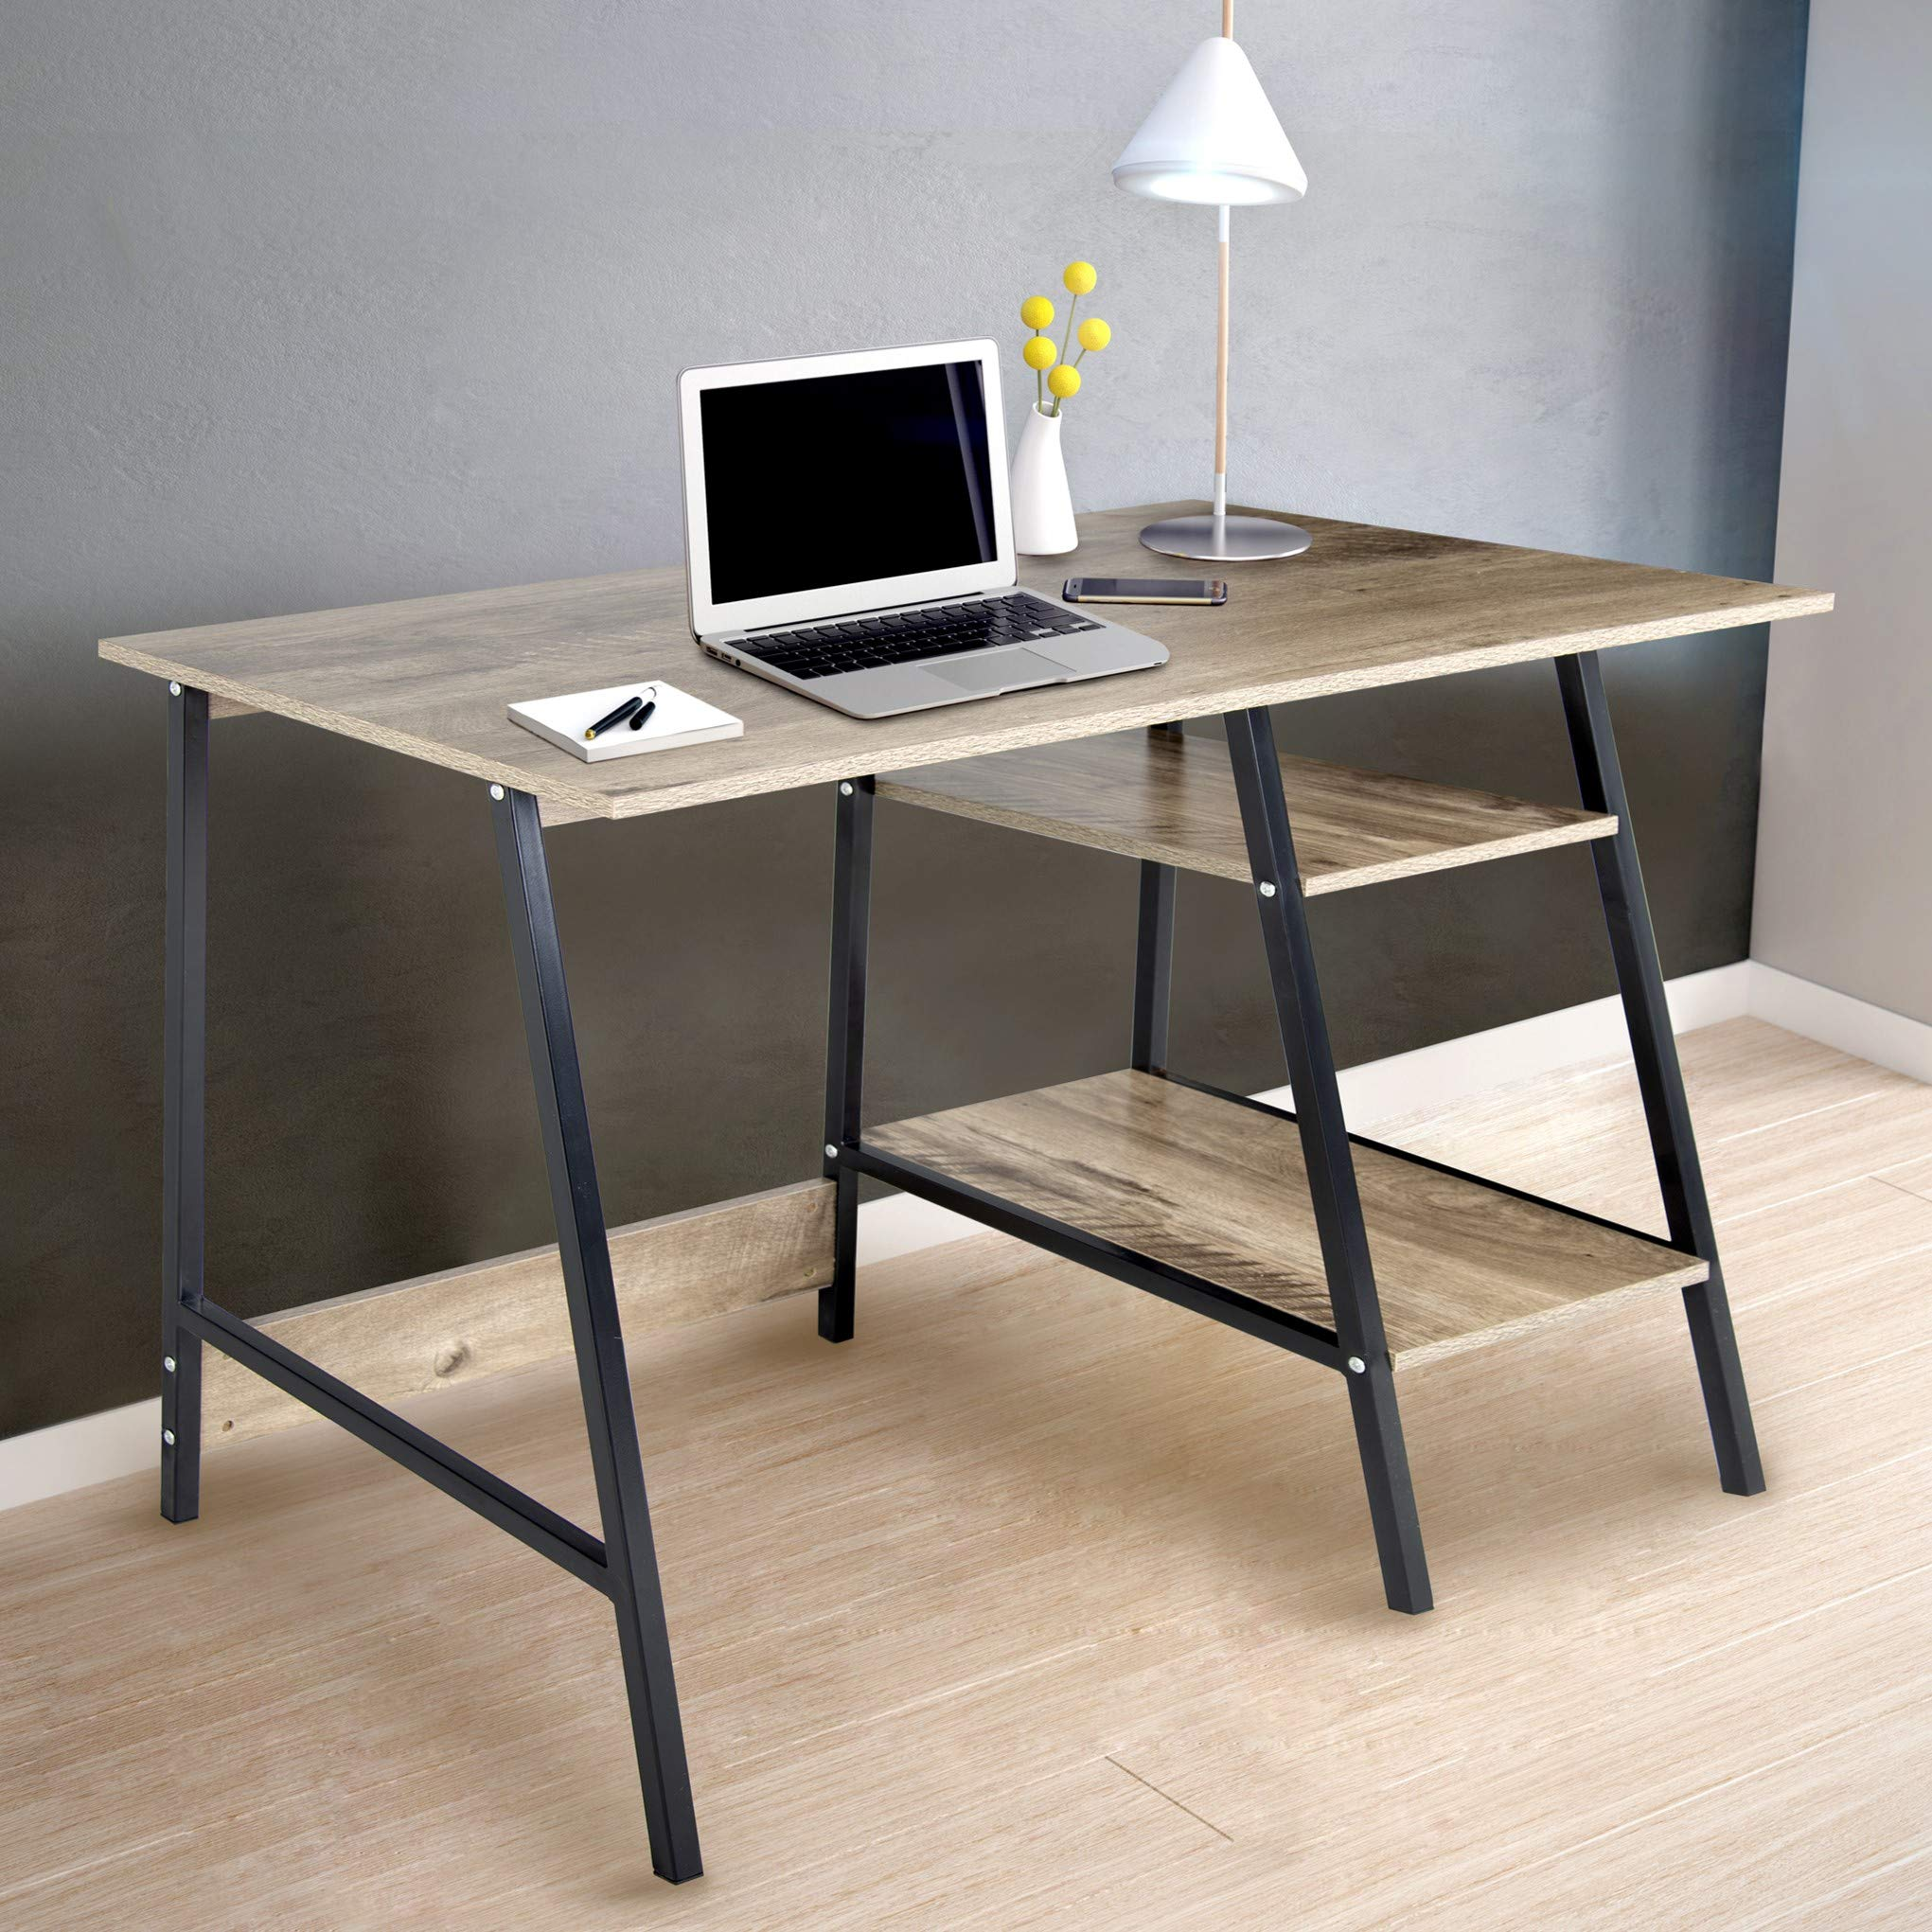 CAP LIVING Computer Desk w/ 2-Tier Shelves, Study Table, Writing Desk, Office Desk in Oak/Black Finish by CAP LIVING